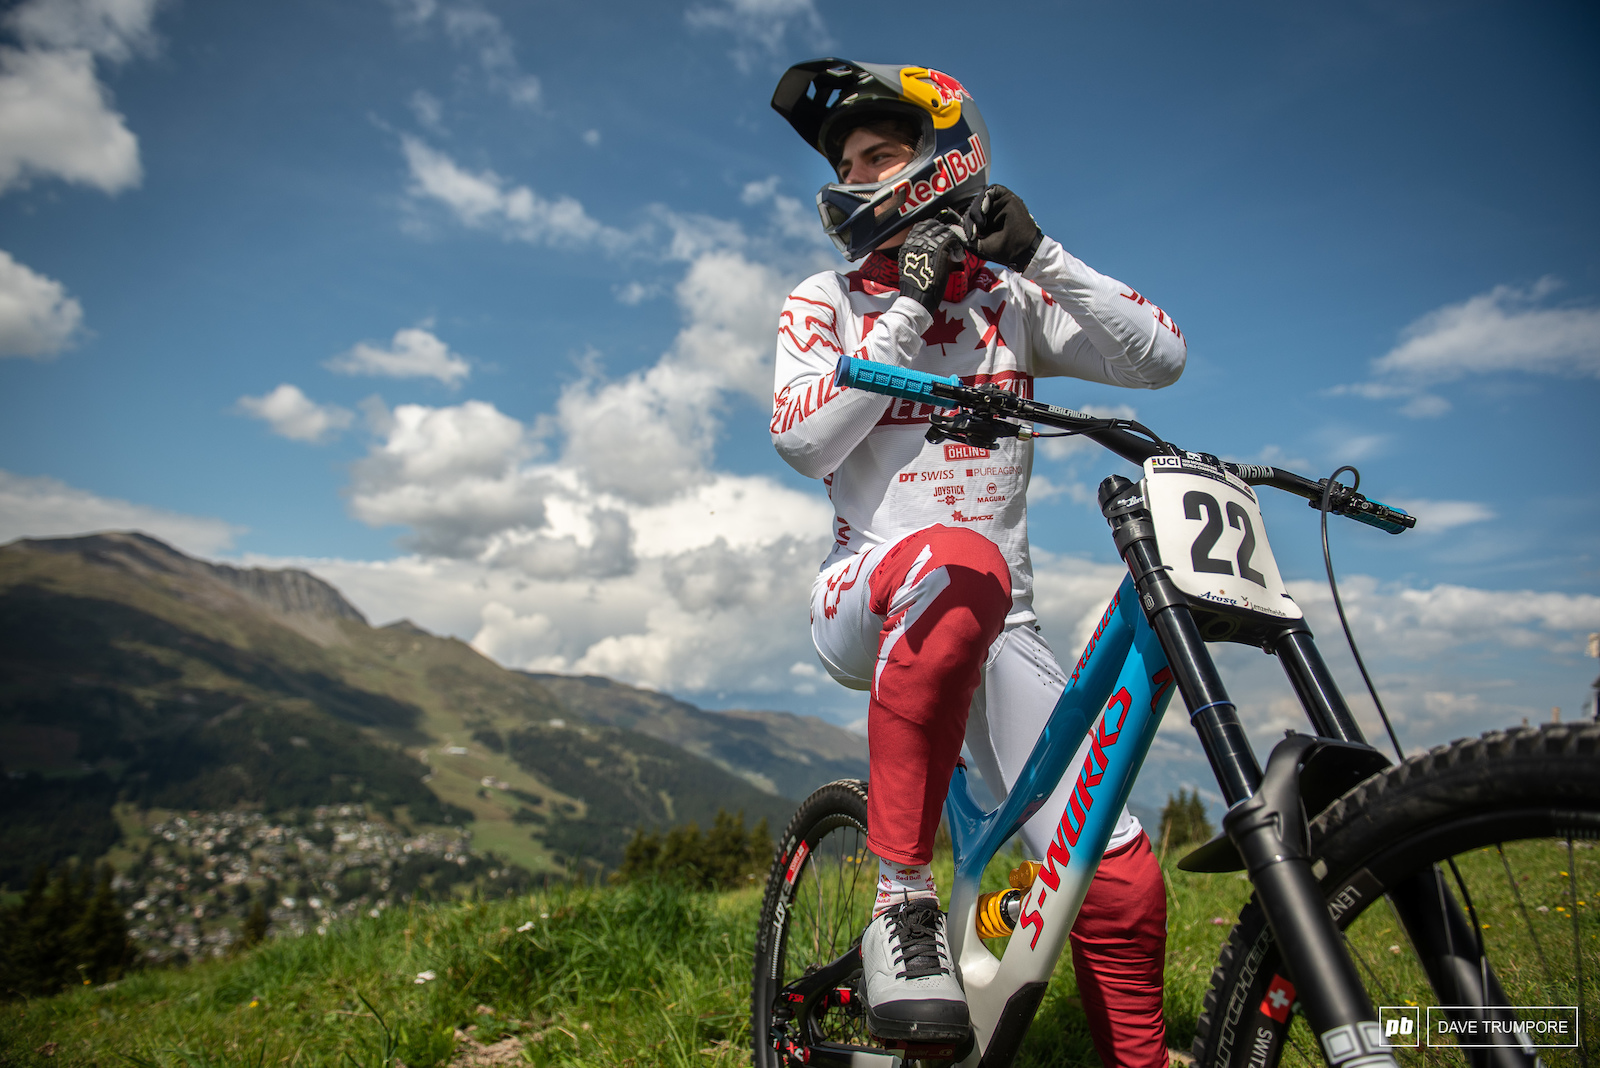 Finn Iles in some custom gear done up in a Canadian flag theme.